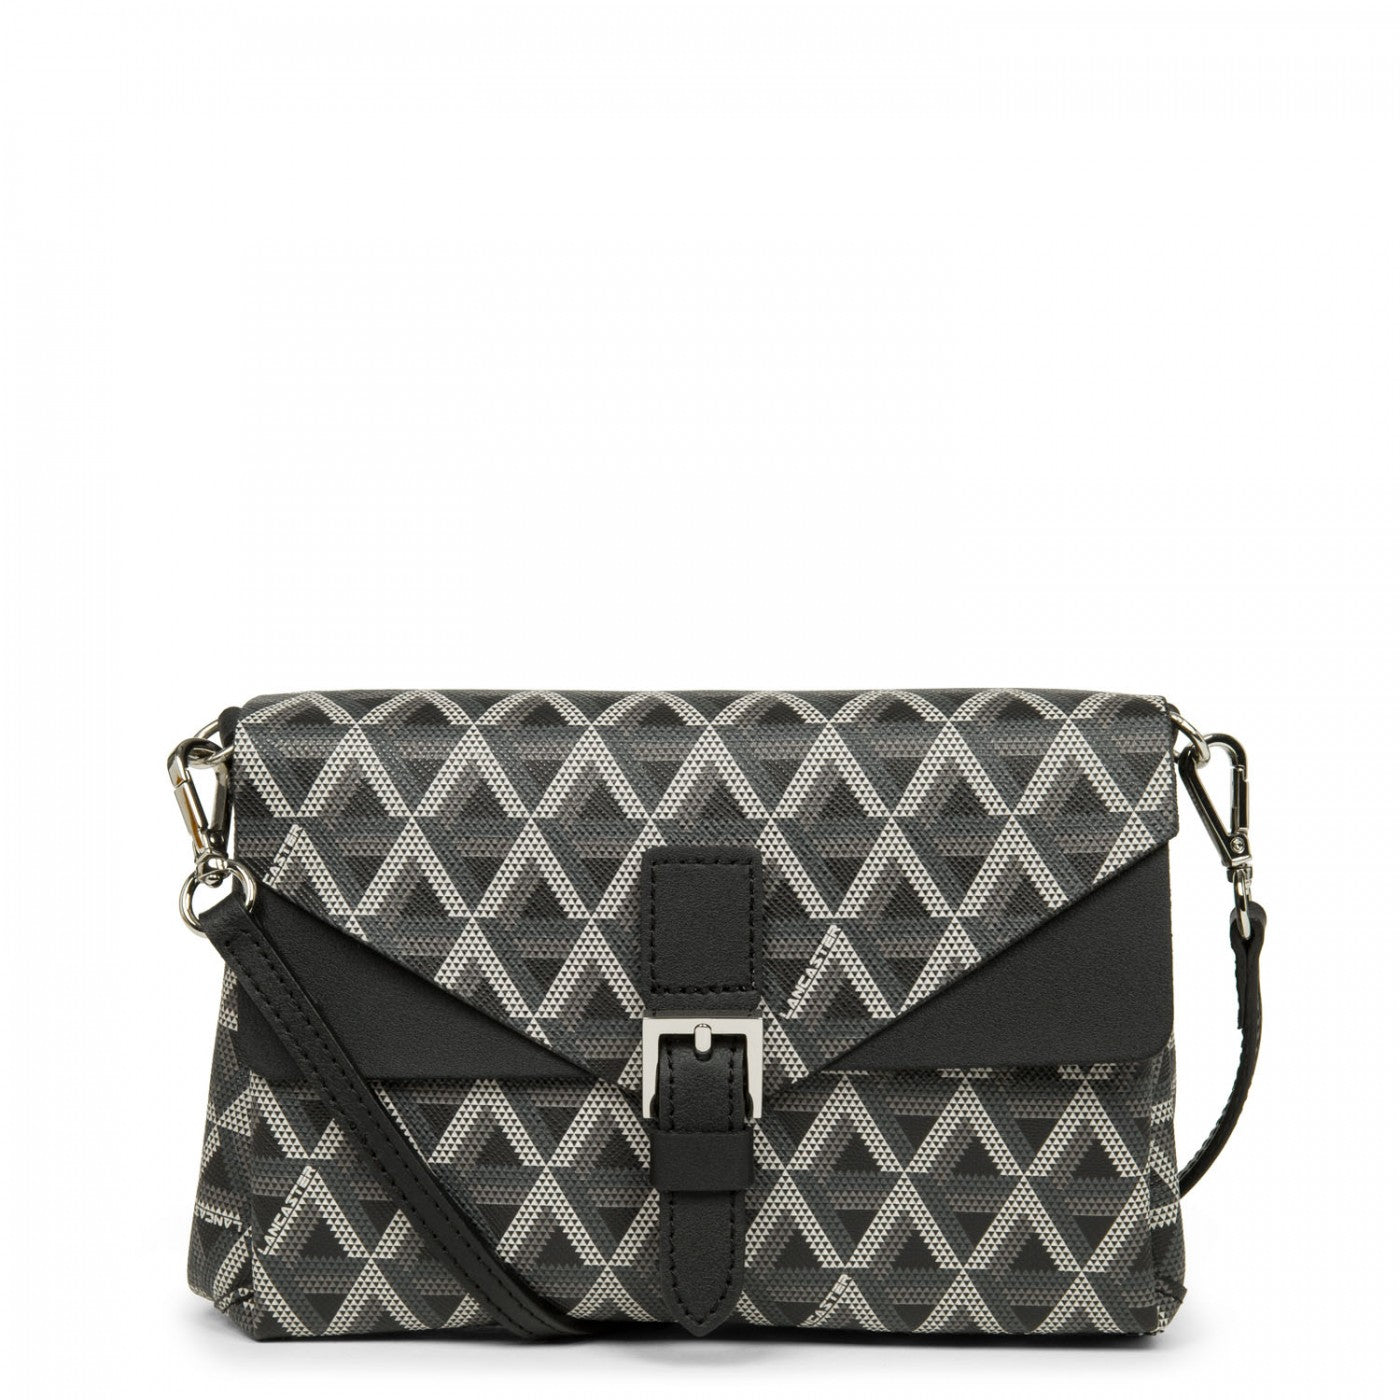 LANCASTER IKON SMALL CROSSBODY BAG - BLACK